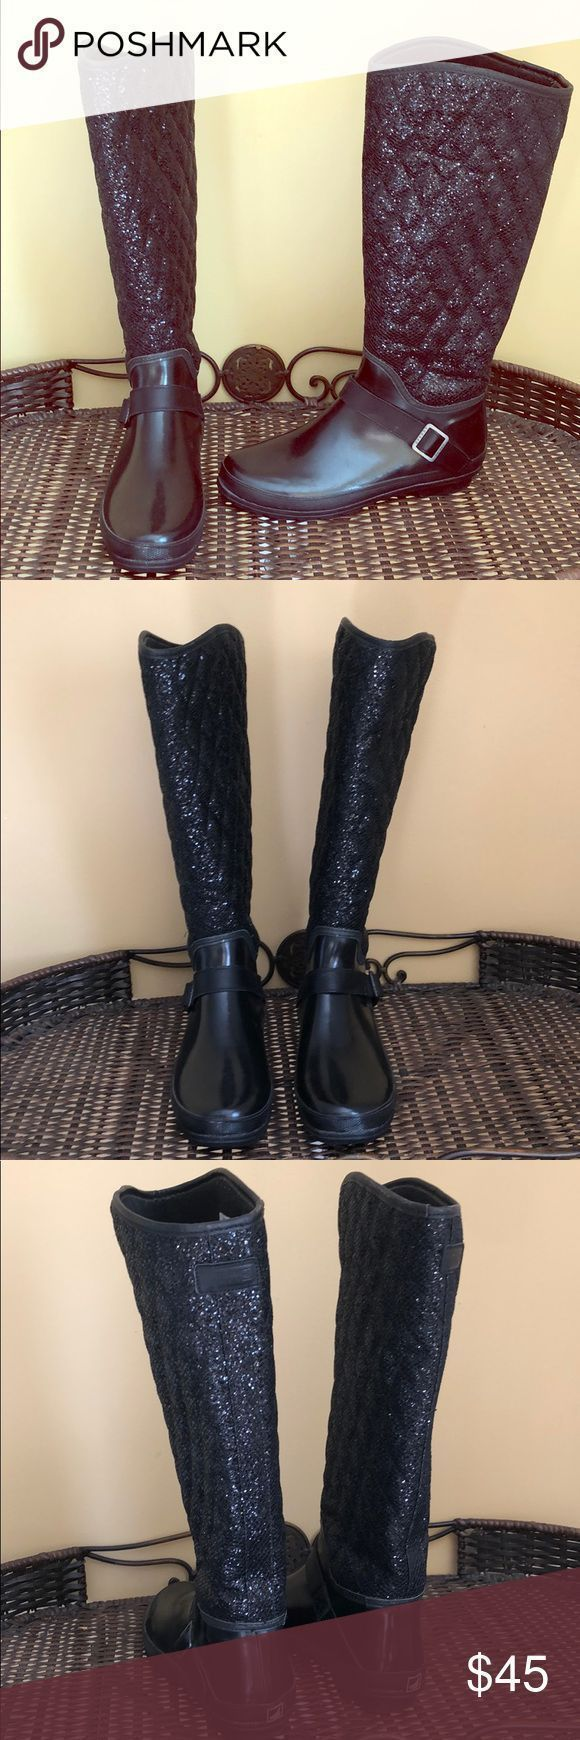 #Black #Boot #Boots #Day #Duck #gorgeous #Outfit #Rain #Rainy #Rainy Day Outfit for work #Sequin #Black #Boot #gorgeous #Rain #Rainy Day Outfit duck boots #Sequin         #Black #Boot #gorgeous #Rain #Rainy Day Outfit duck boots #Sequin #rainydayoutfitforwork #Black #Boot #Boots #Day #Duck #gorgeous #Outfit #Rain #Rainy #Rainy Day Outfit for work #Sequin #Black #Boot #gorgeous #Rain #Rainy Day Outfit duck boots #Sequin         #Black #Boot #gorgeous #Rain #Rainy Day Outfit duck boots #Sequin #ra #rainydayoutfitforwork